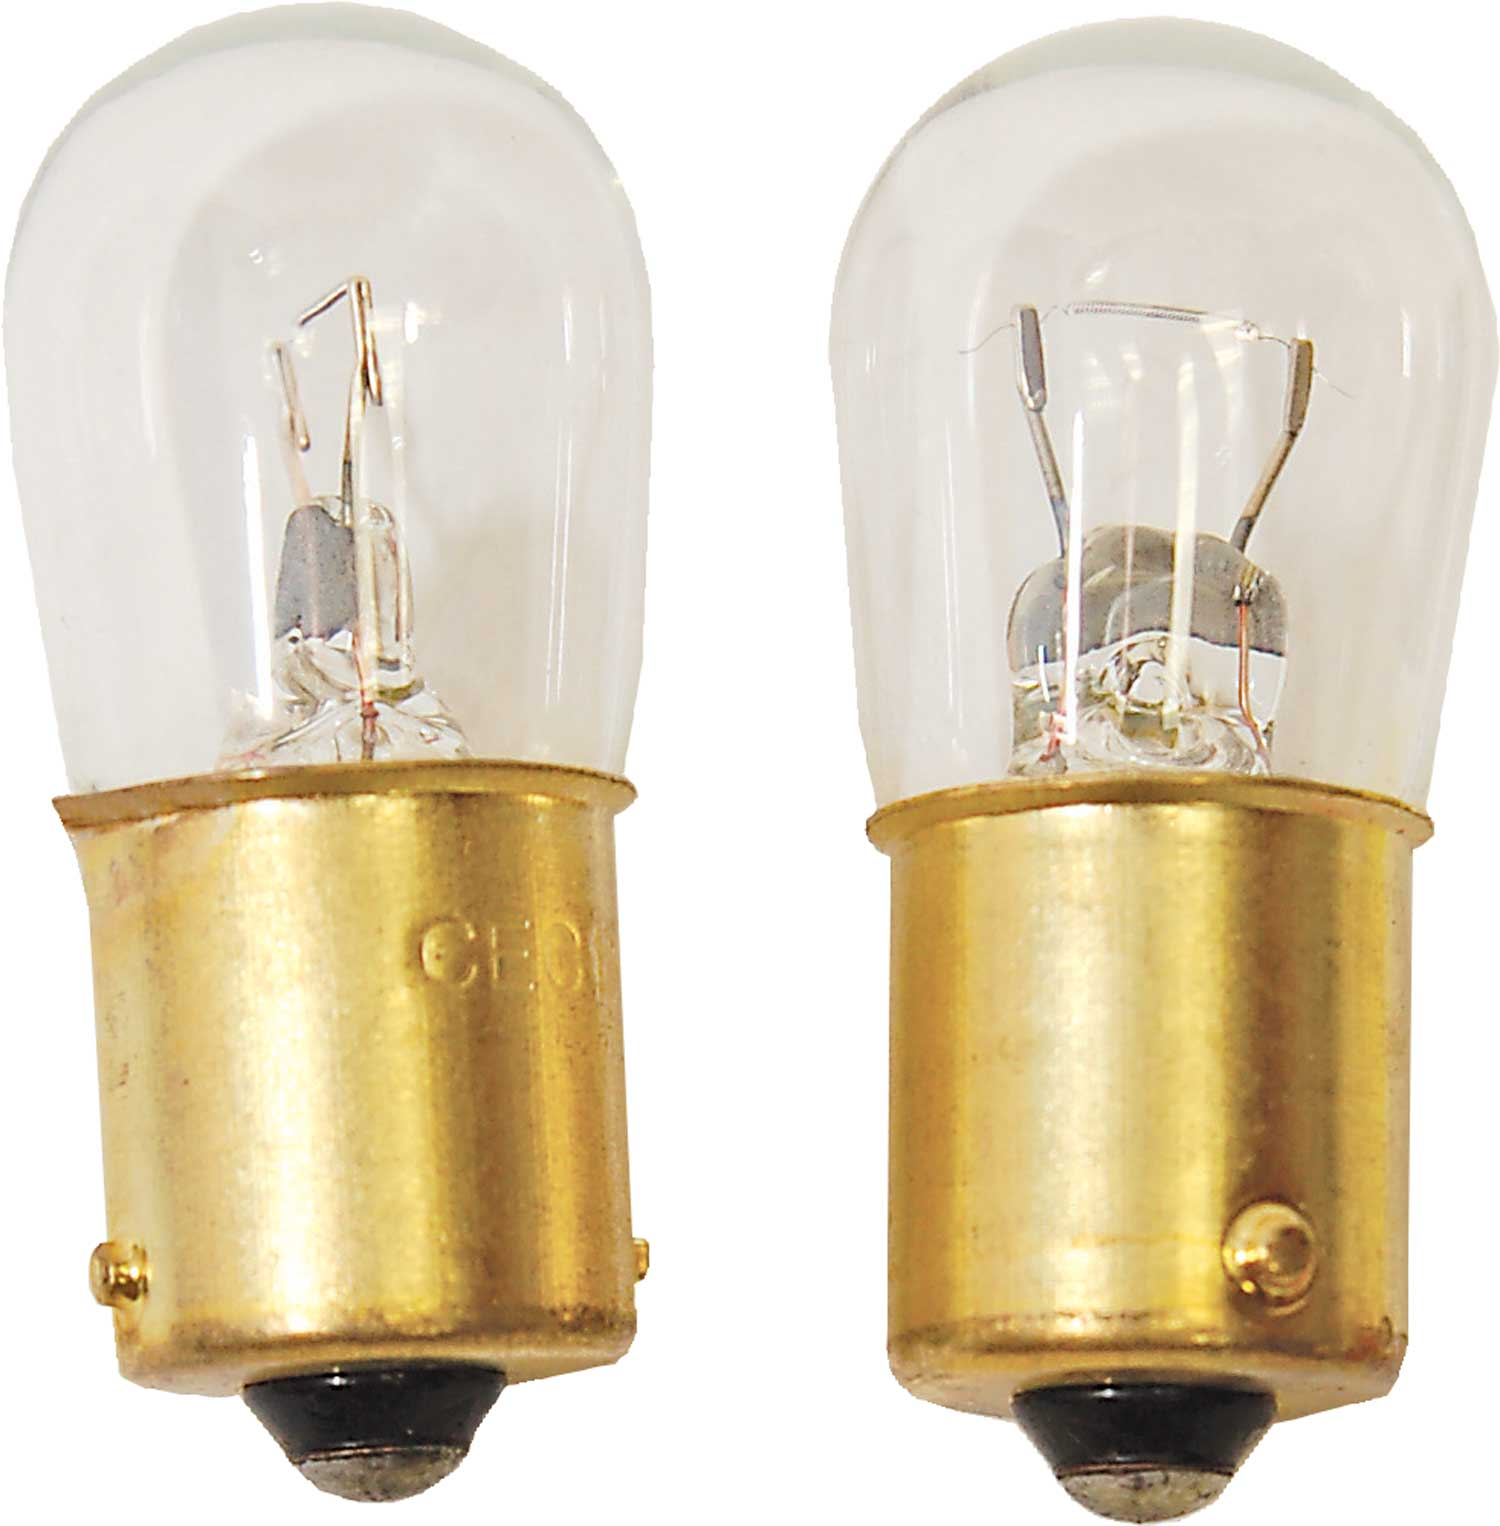 know the light design decorating bulb lighting bulbs different hgtv types